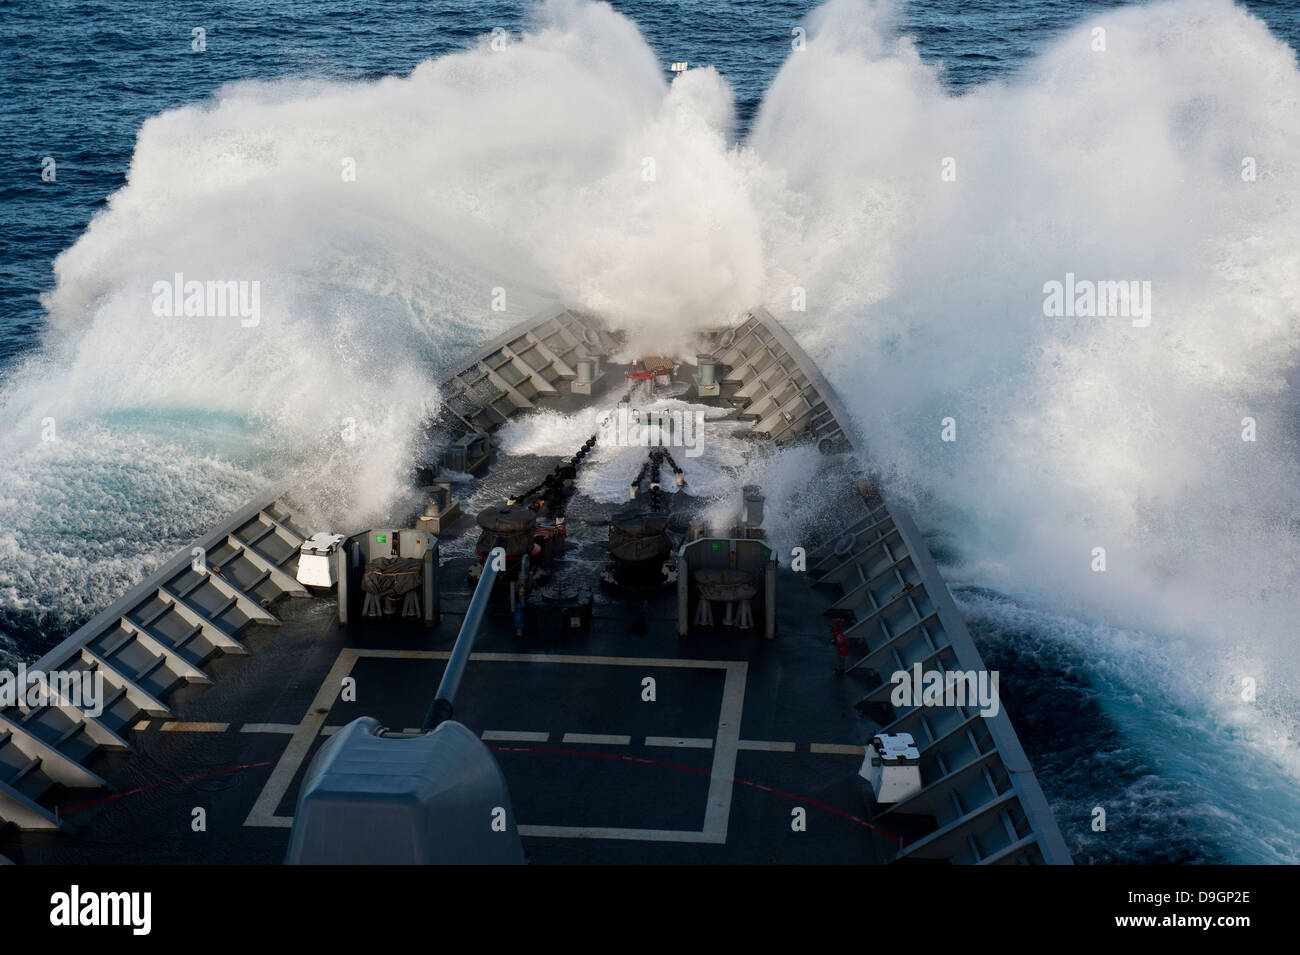 The bow of USS Cowpens plows through a wave in rough seas. - Stock Image